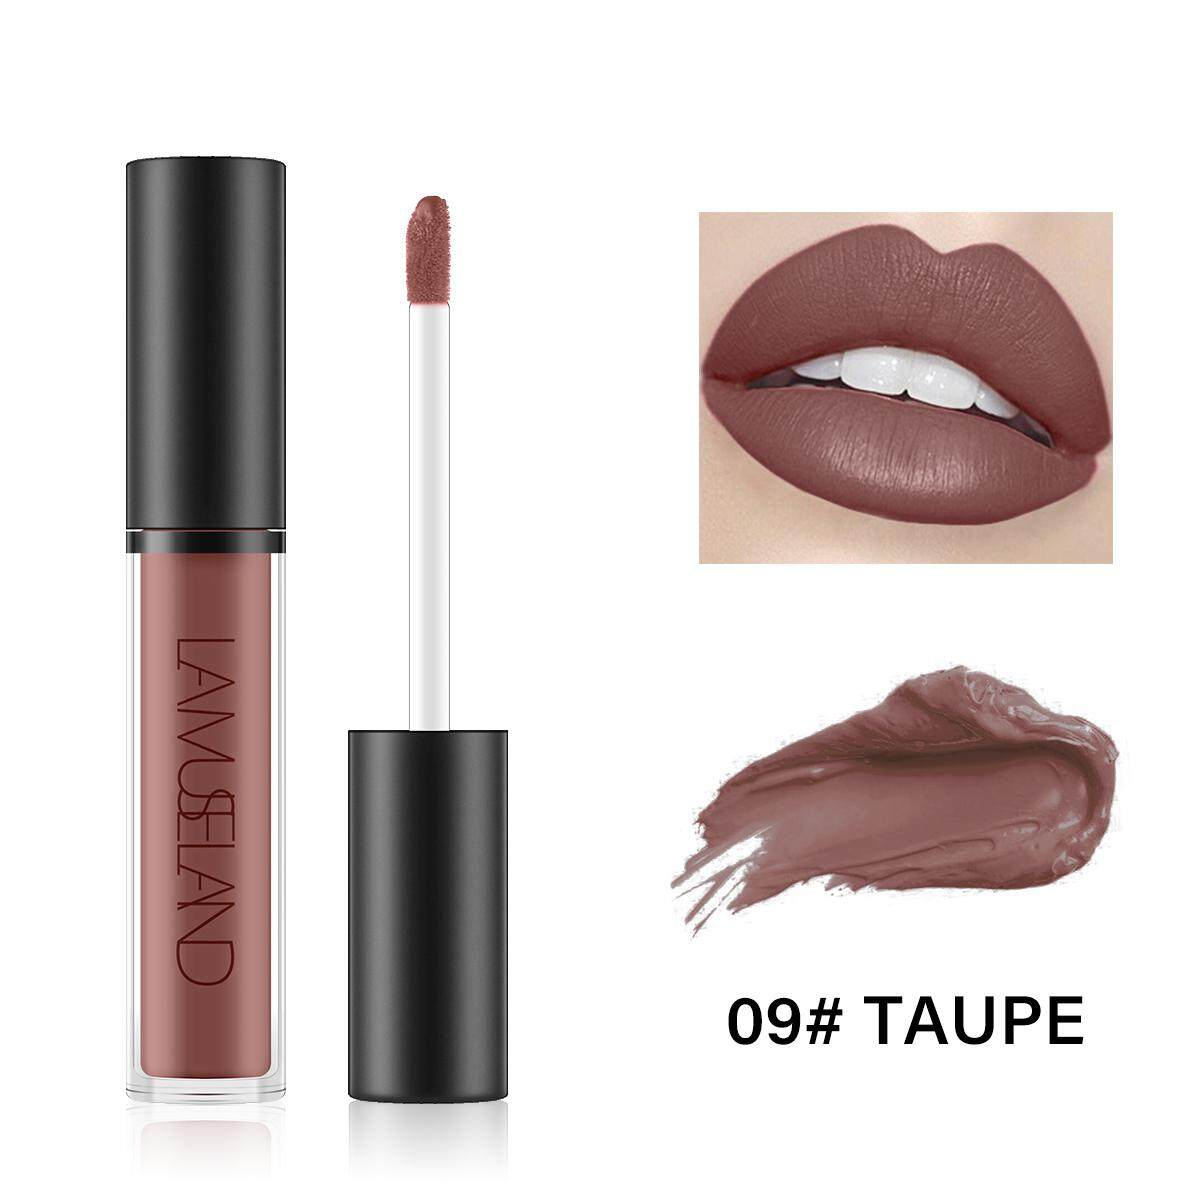 Lamuseland Matte Waterproof Long-Lasting Lip Gloss Liquid Lipstick La01 By Barbiecosmetic.